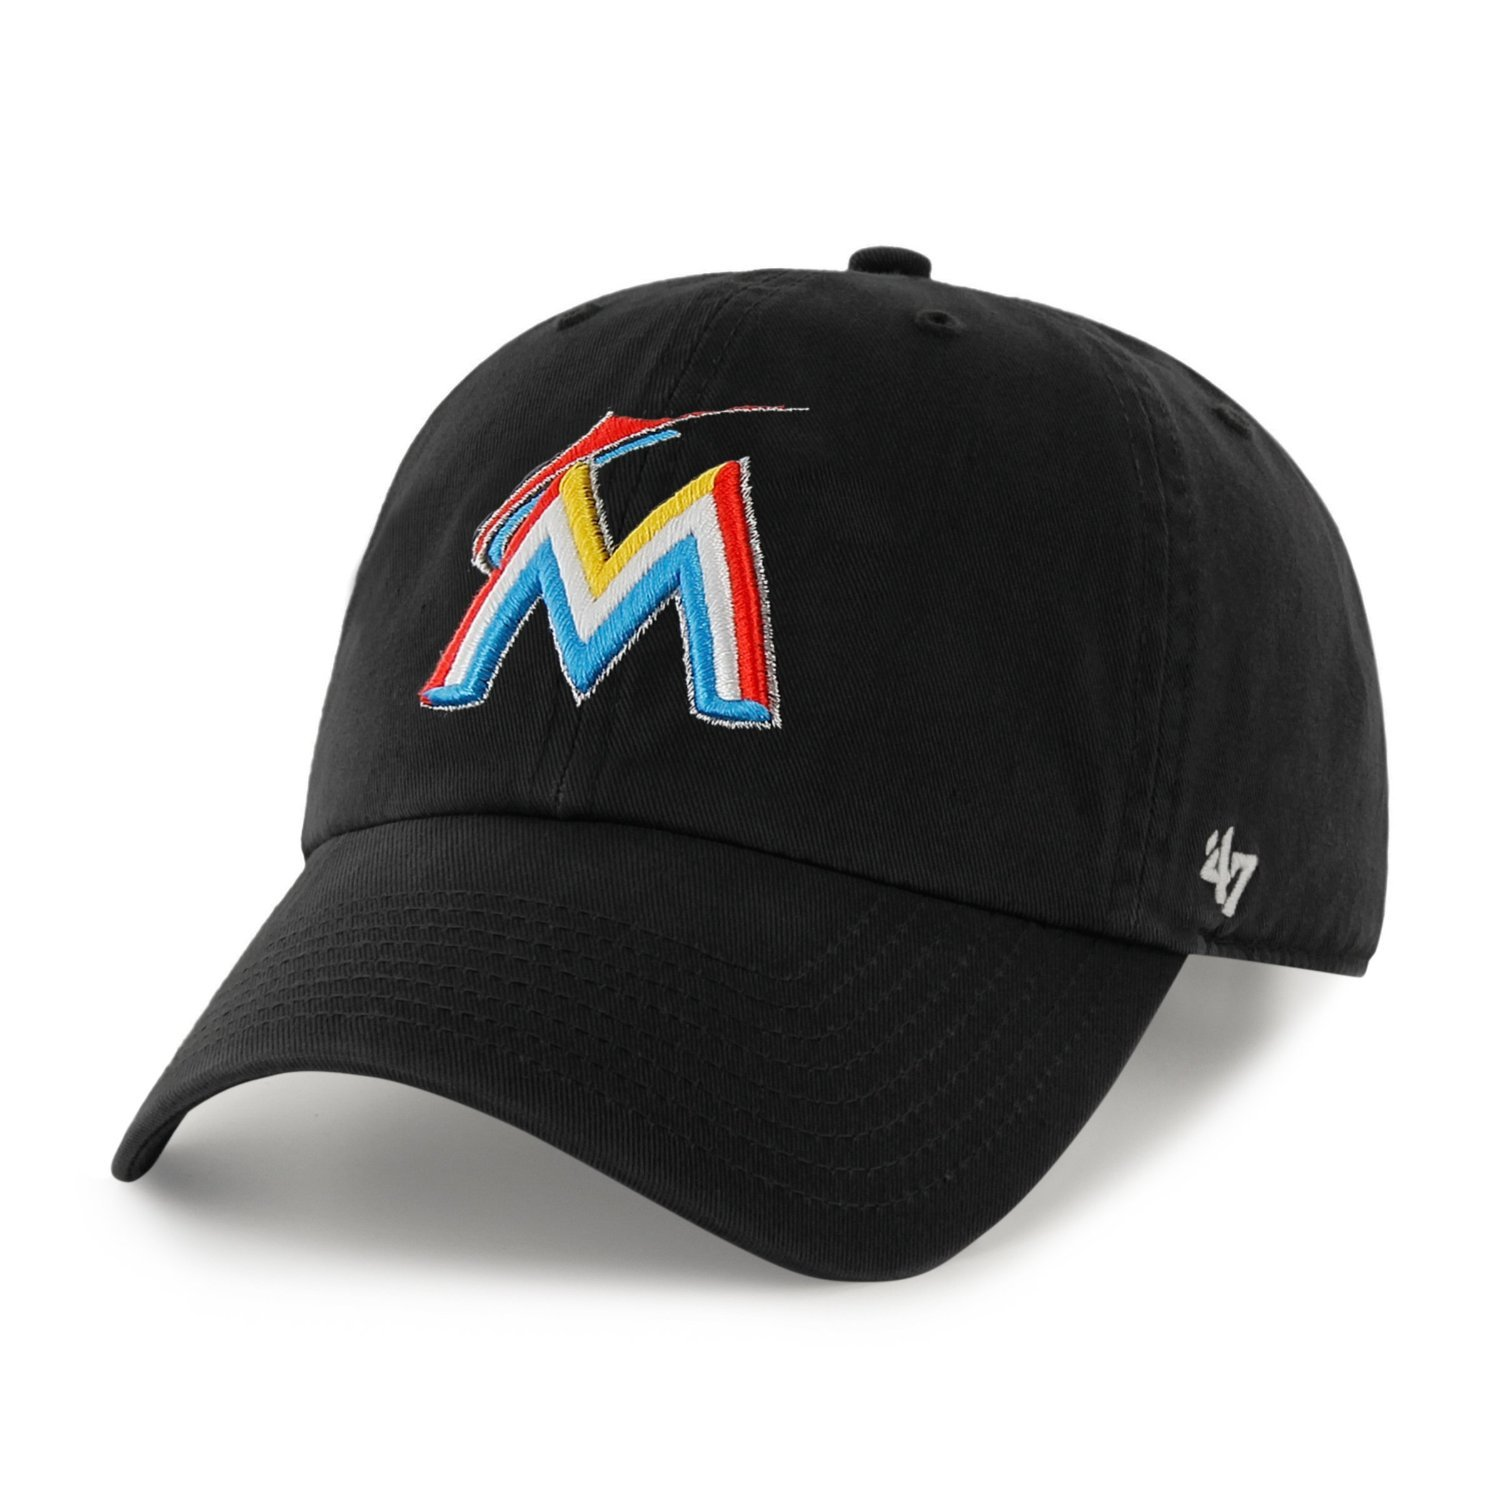 size 40 b405c 7d514 Get Quotations · MLB Miami Marlins  47 Brand Black Basic Logo Clean Up Home  Adjustable Hat